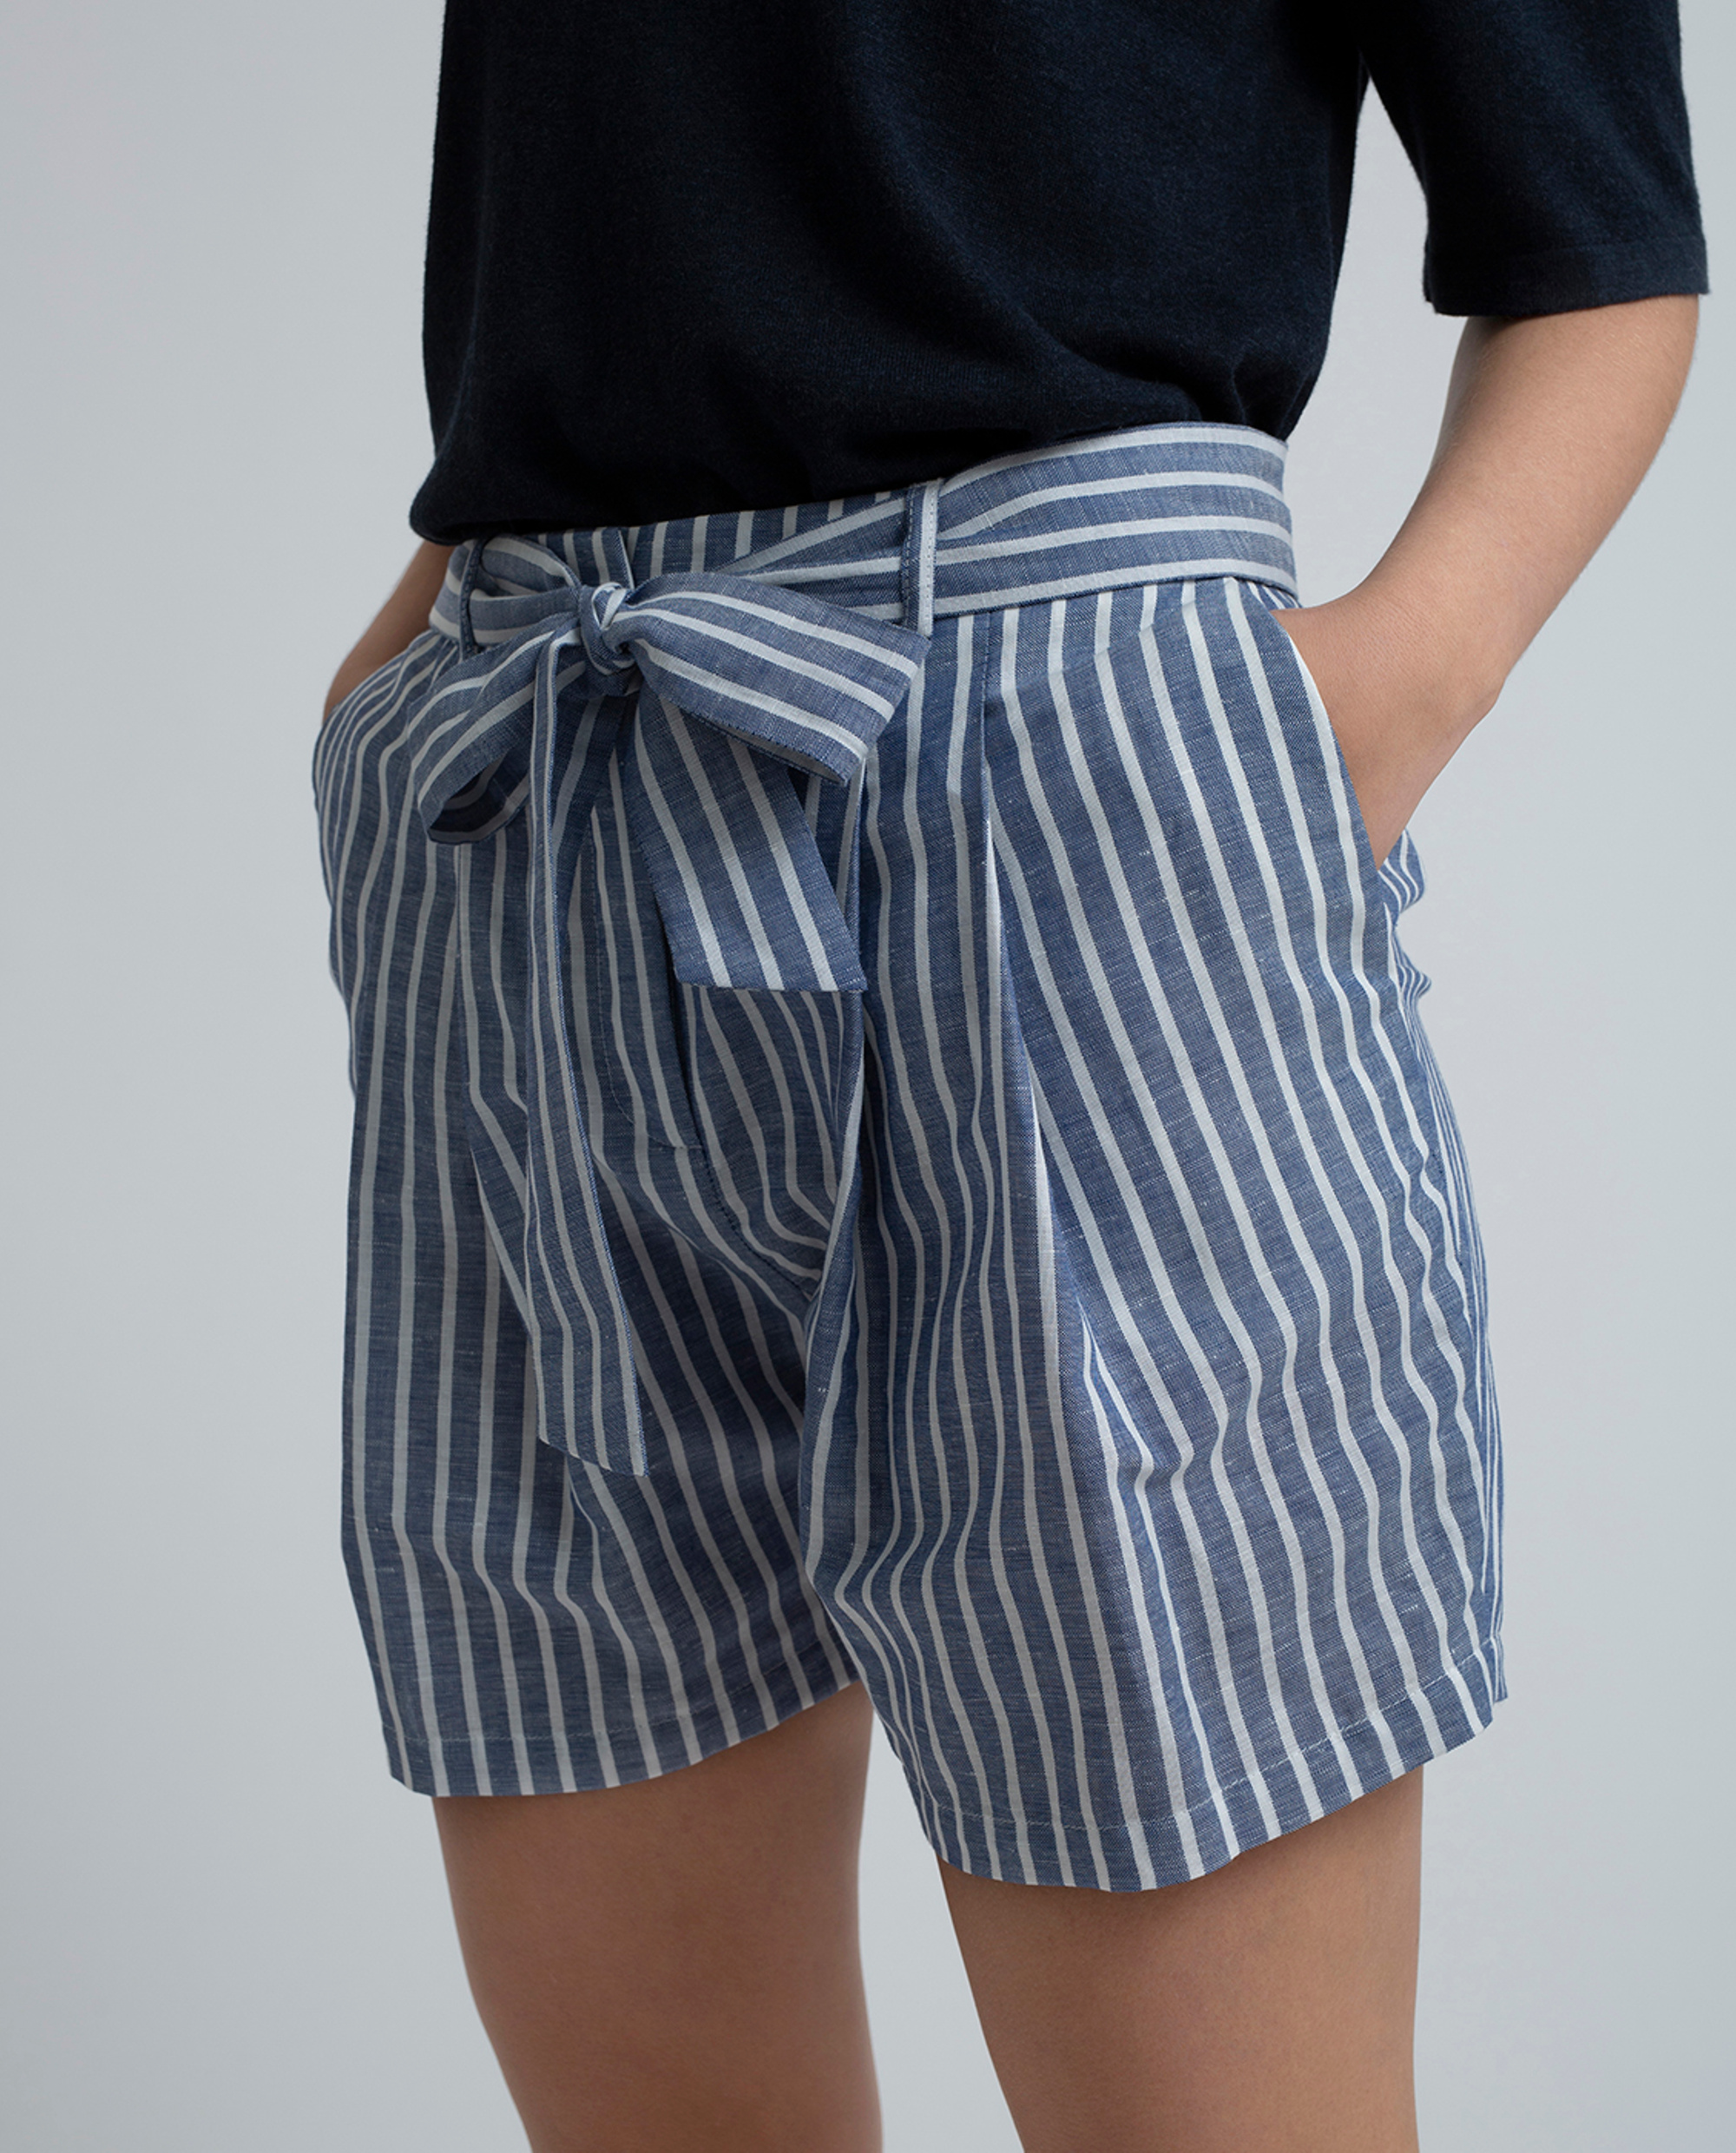 Alisa Linen Shorts, Blue/White